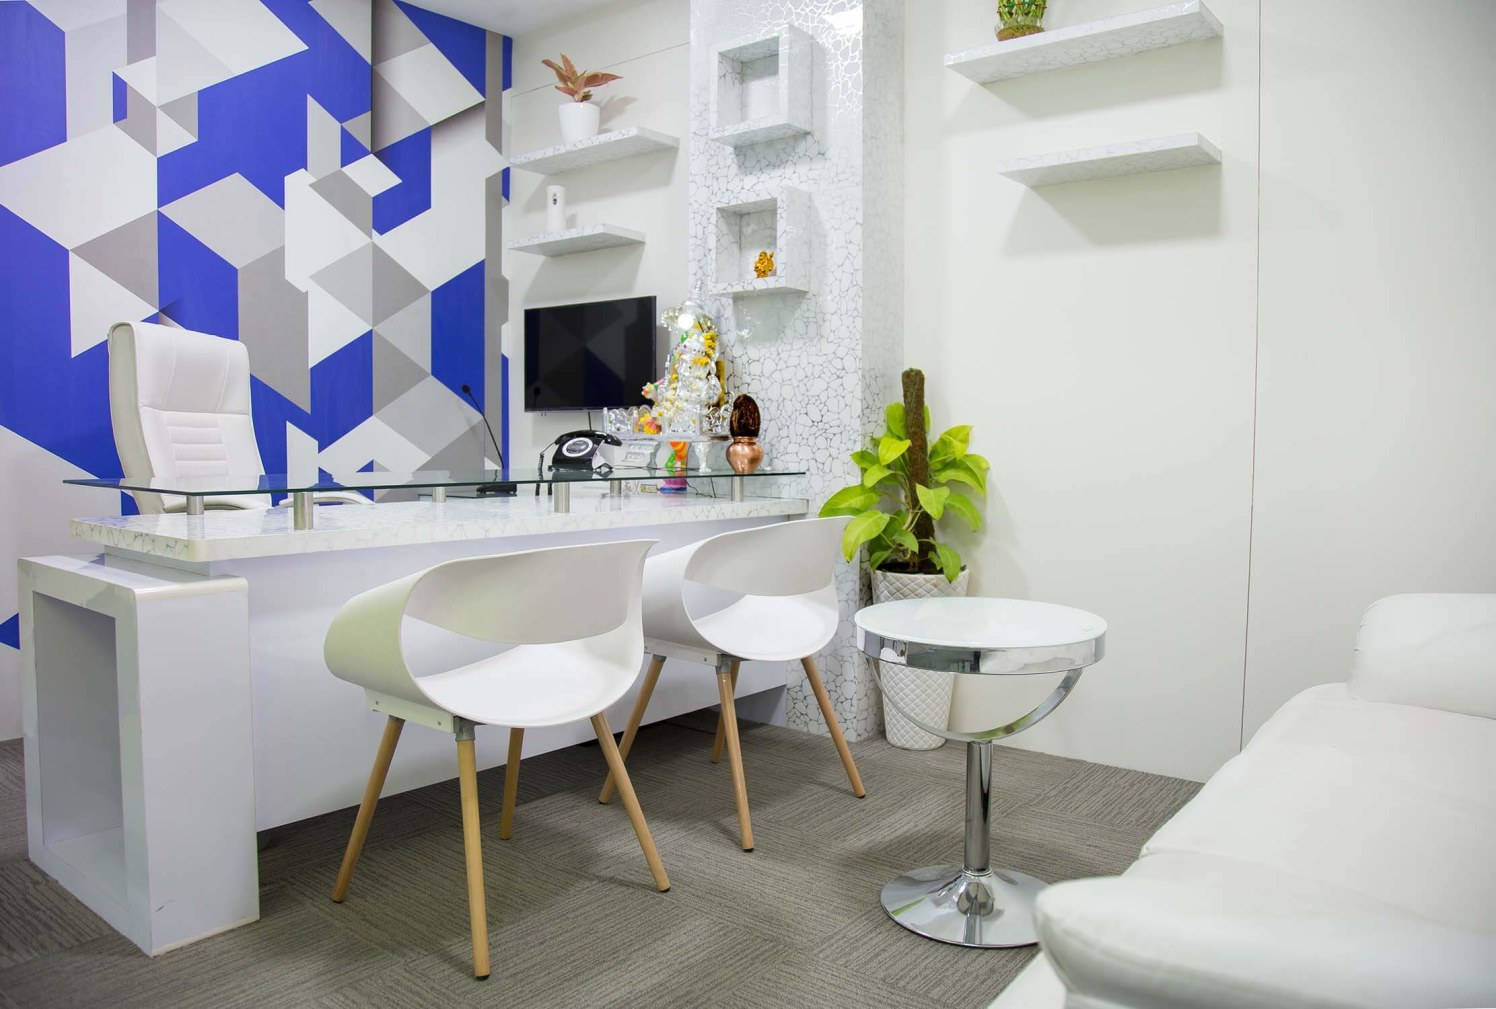 White Themed Office Space with Glass Top Desk and White Chairs by Trupti Ladda Contemporary | Interior Design Photos & Ideas